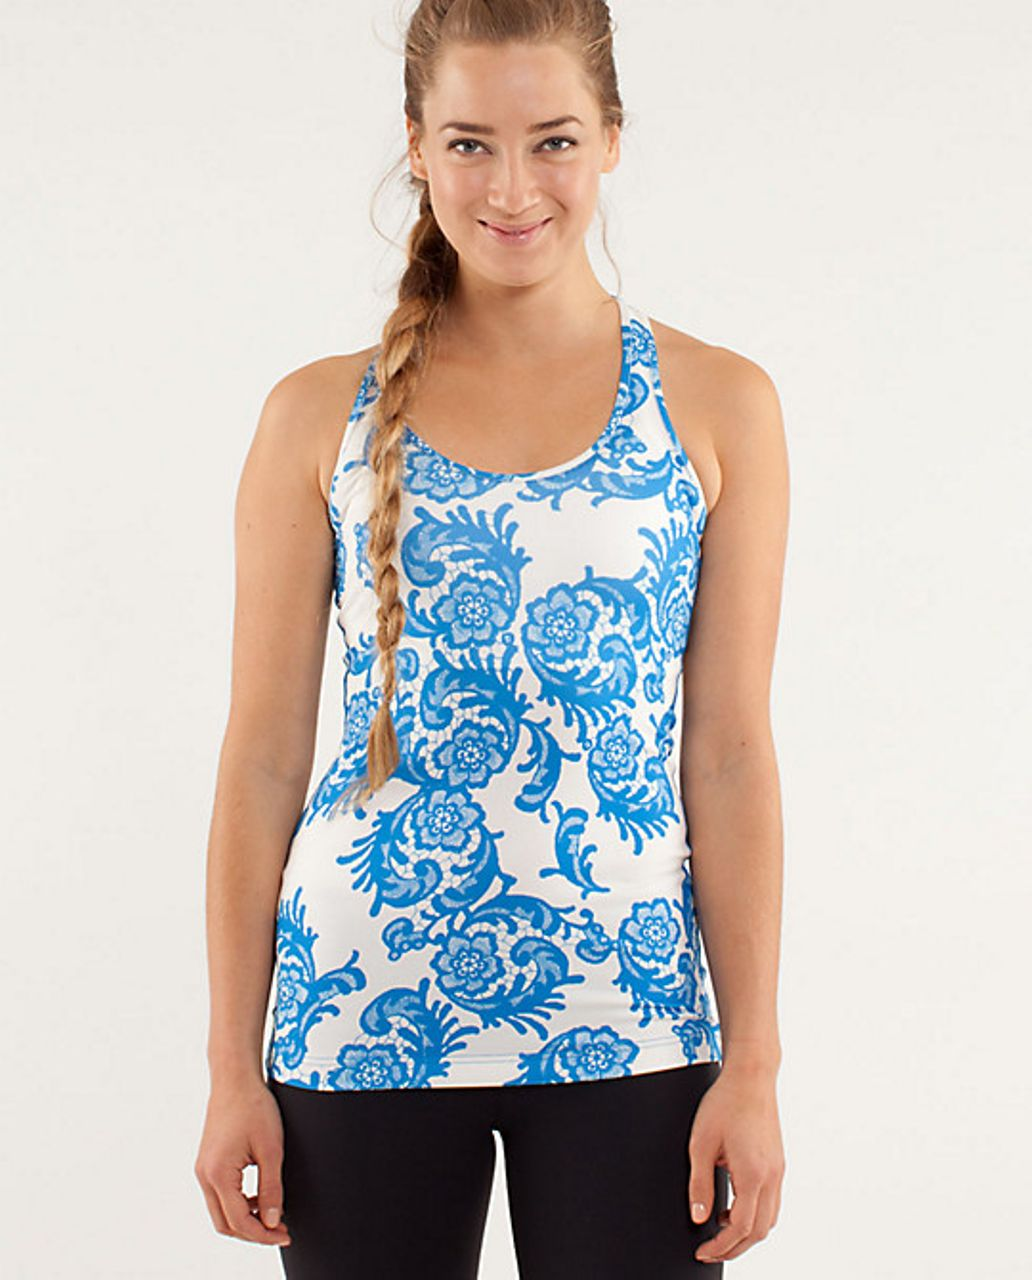 Lululemon Cool Racerback - Laceoflage Beaming Blue